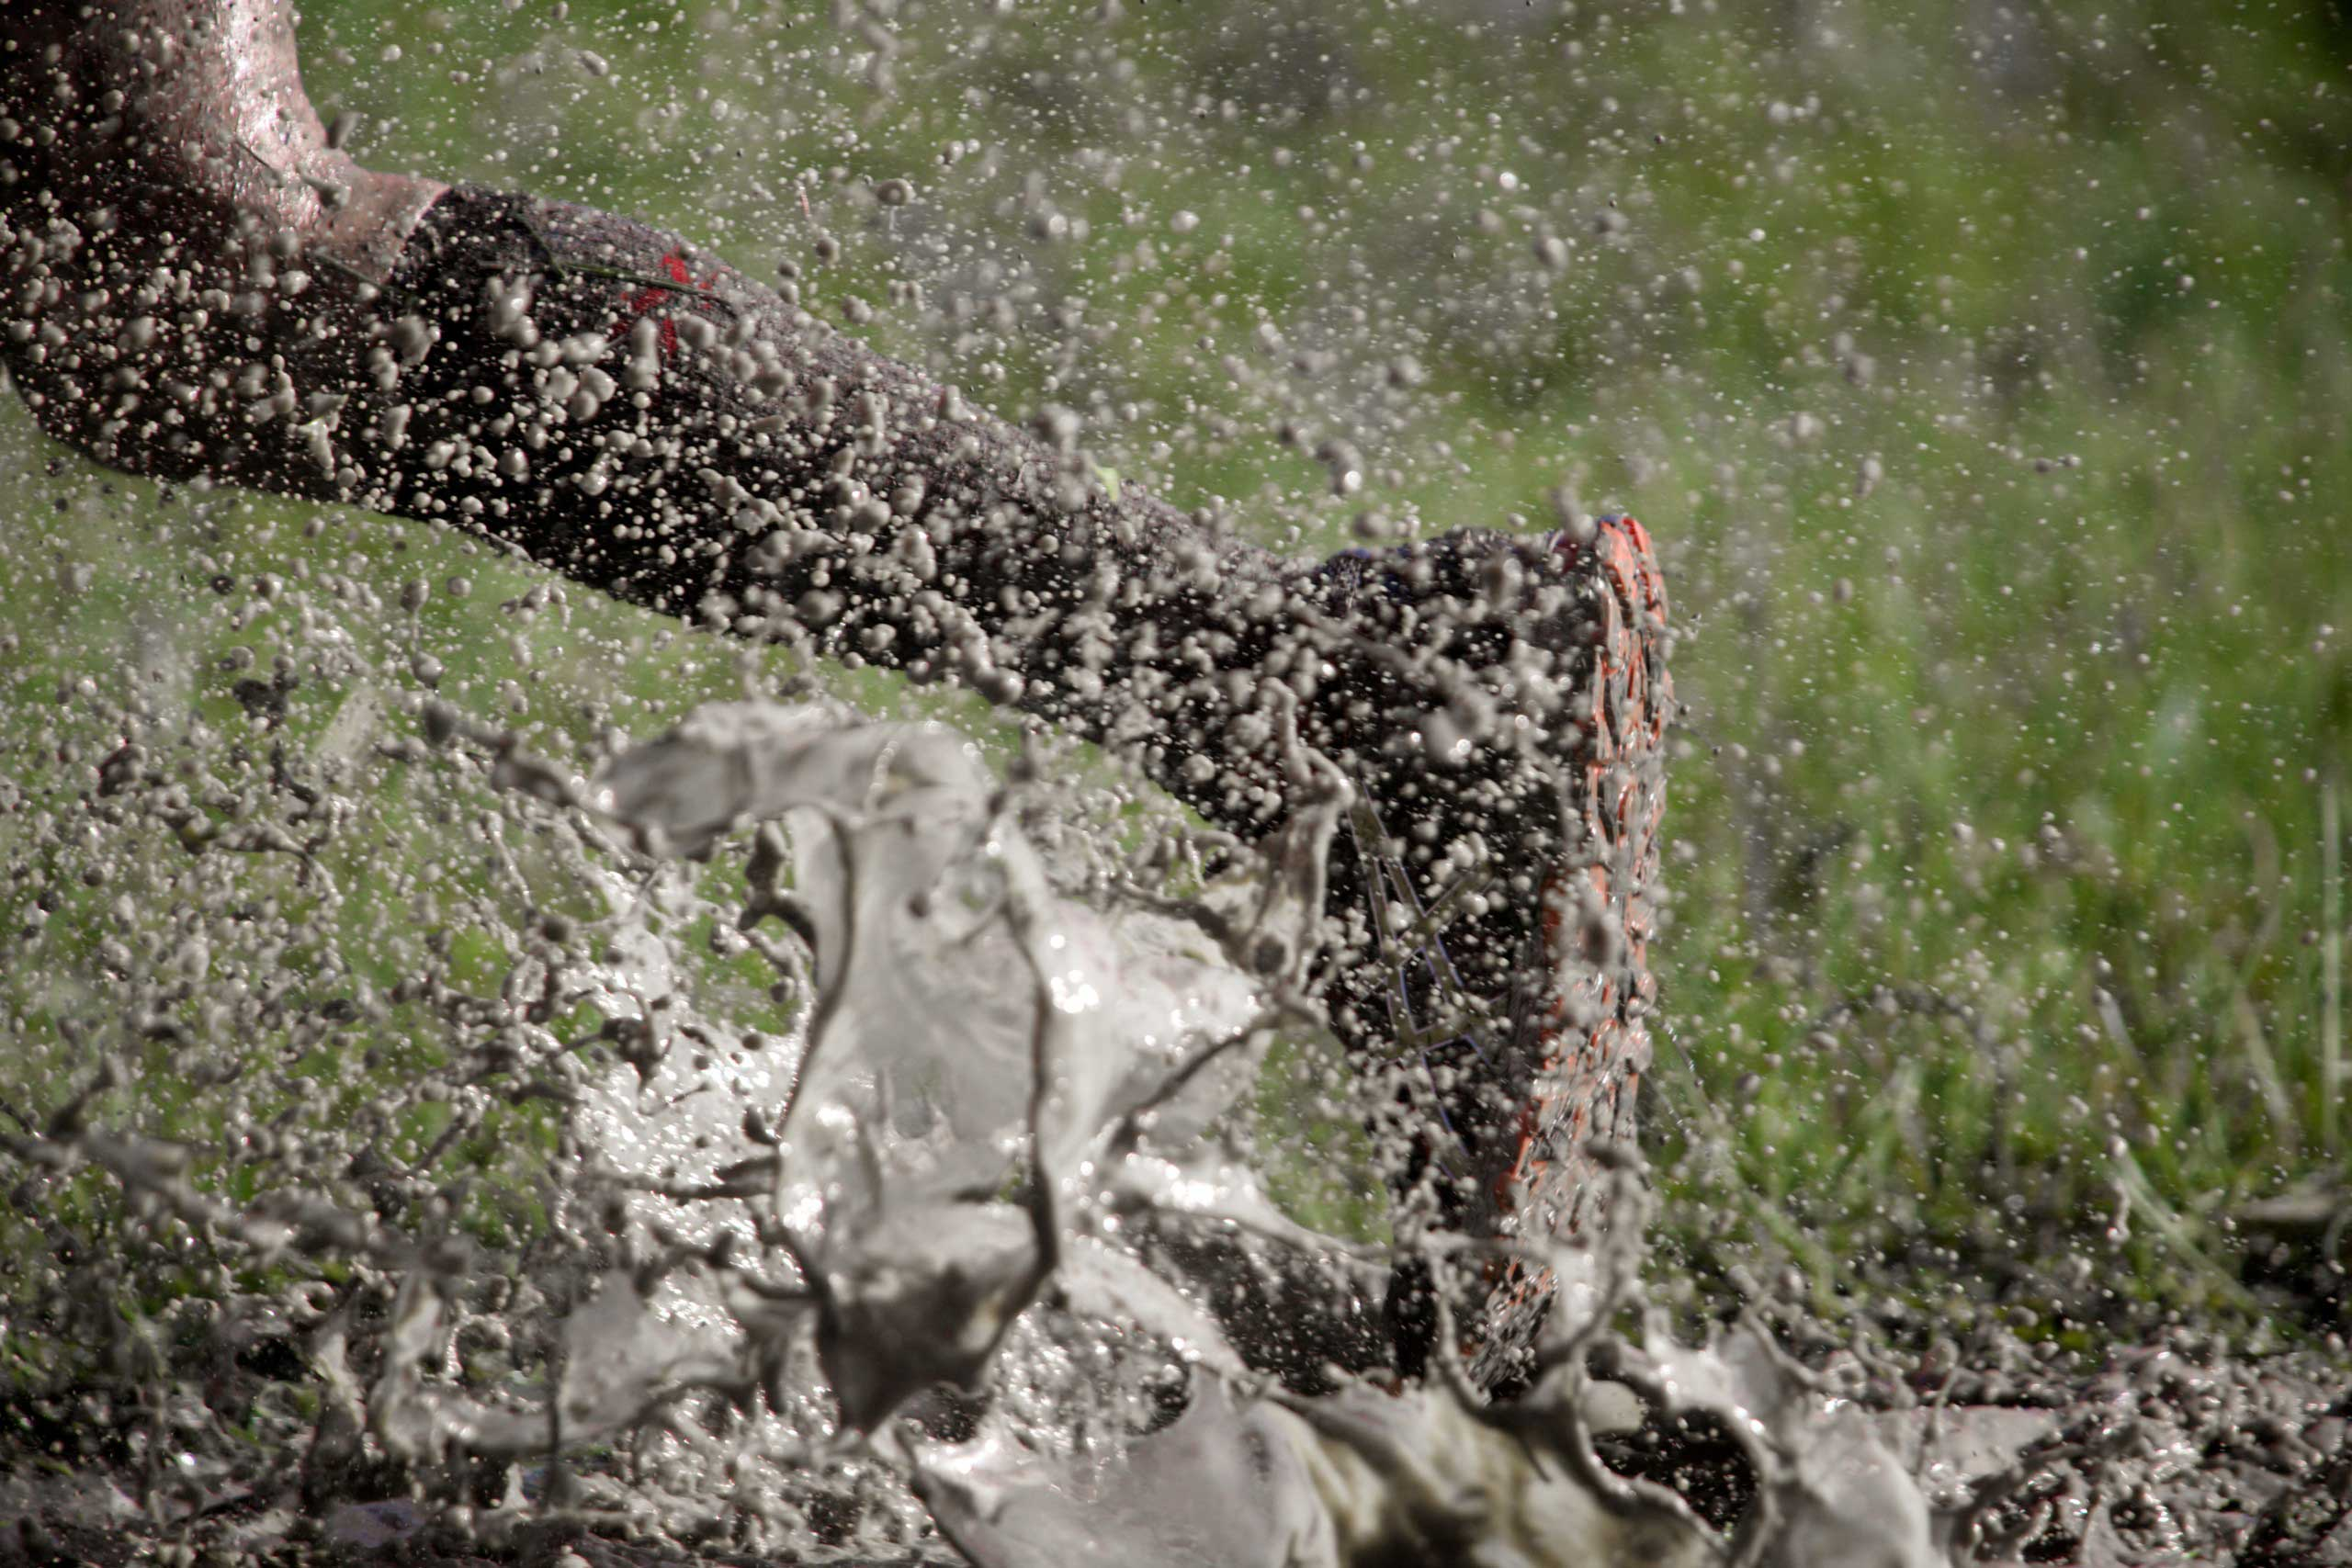 Person running through mud